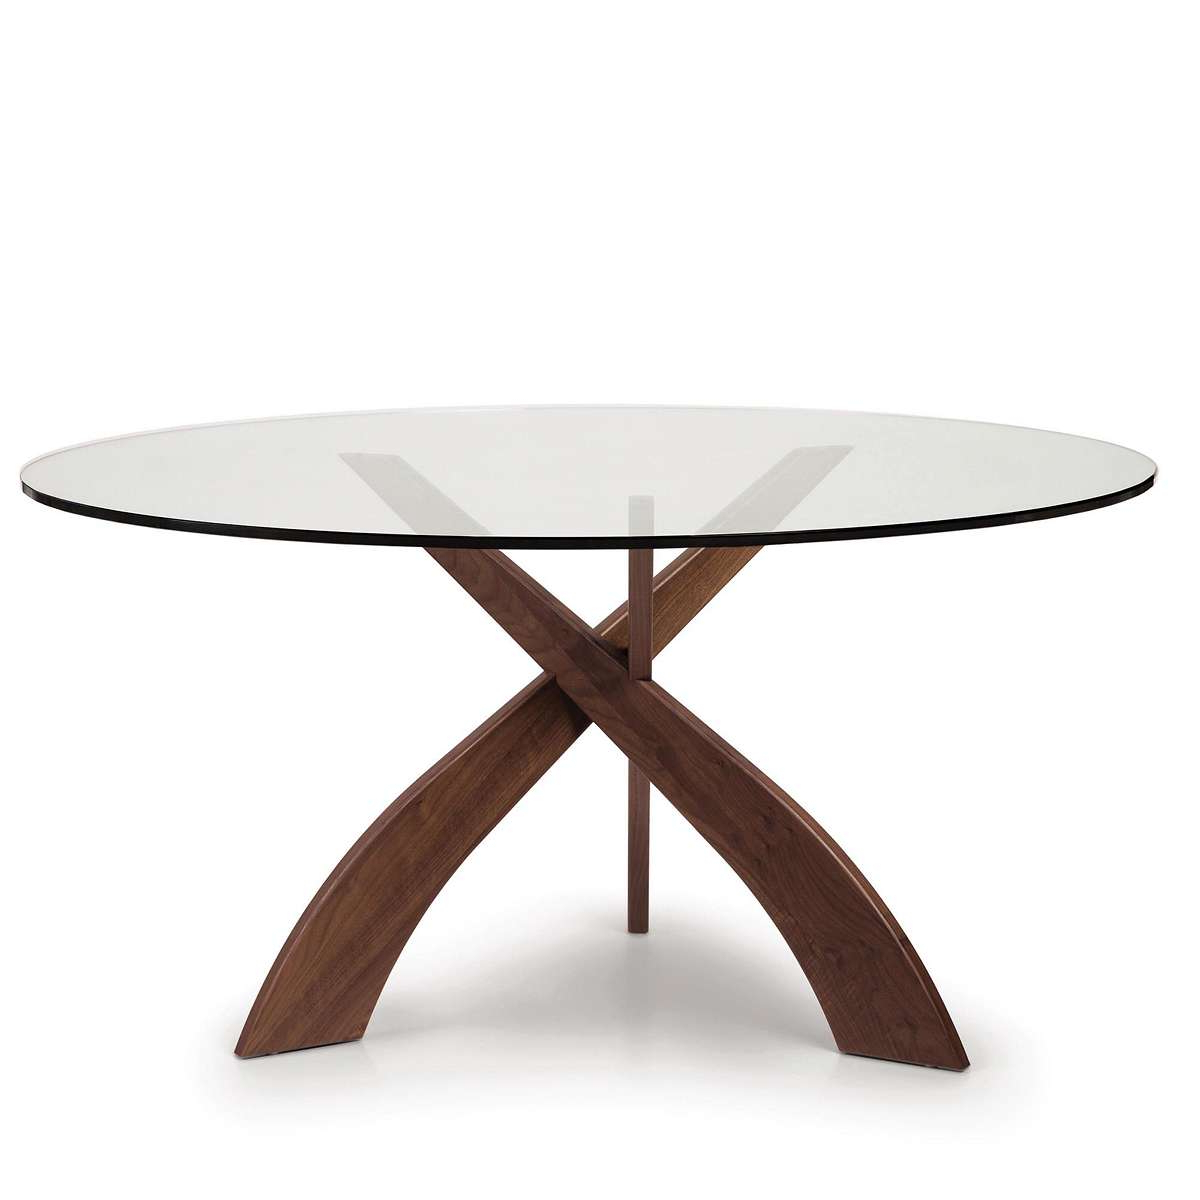 Entwine Round Glass Top Dining Table With Regard To Well Known Round Dining Tables With Glass Top (View 17 of 25)